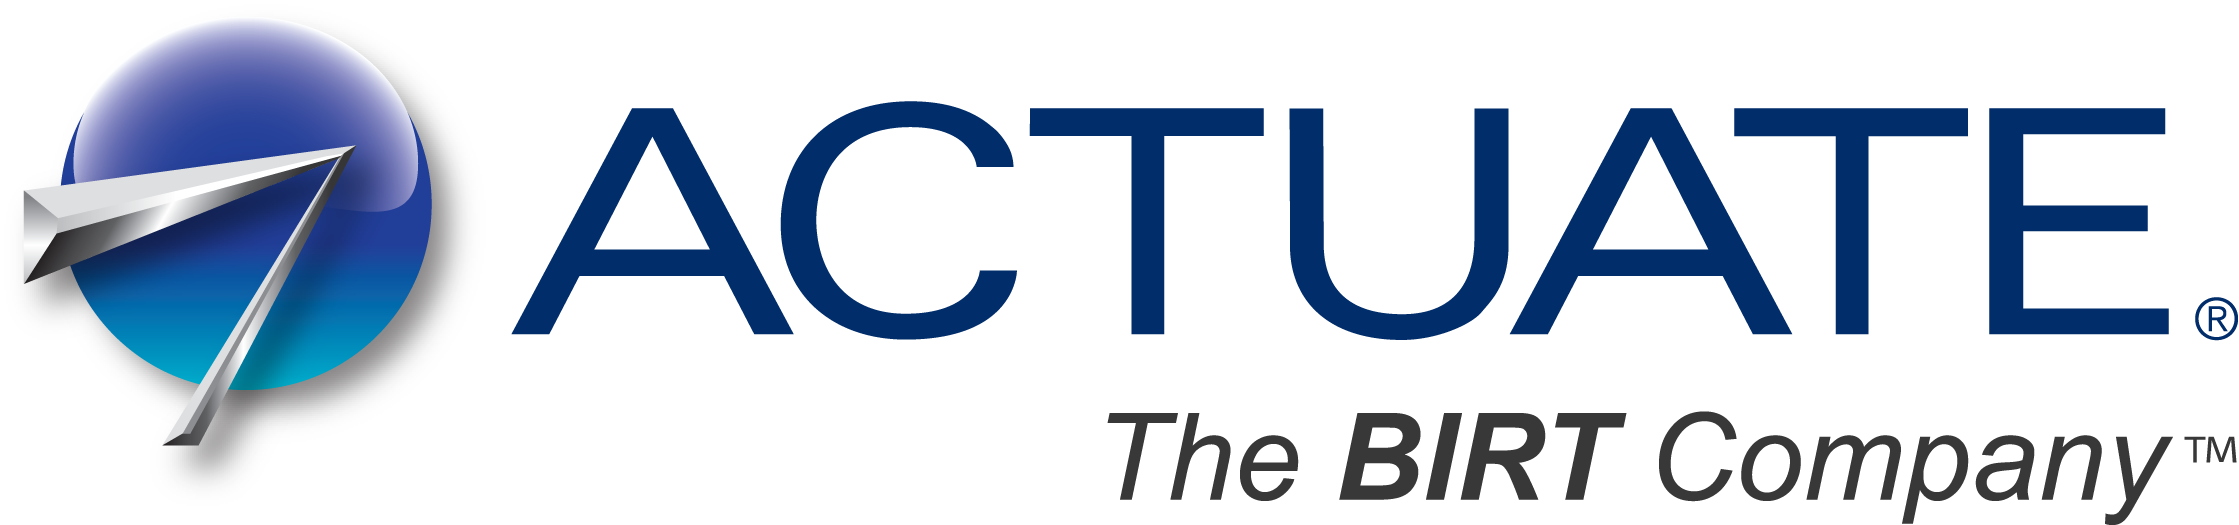 Actuate – The BIRT Company™